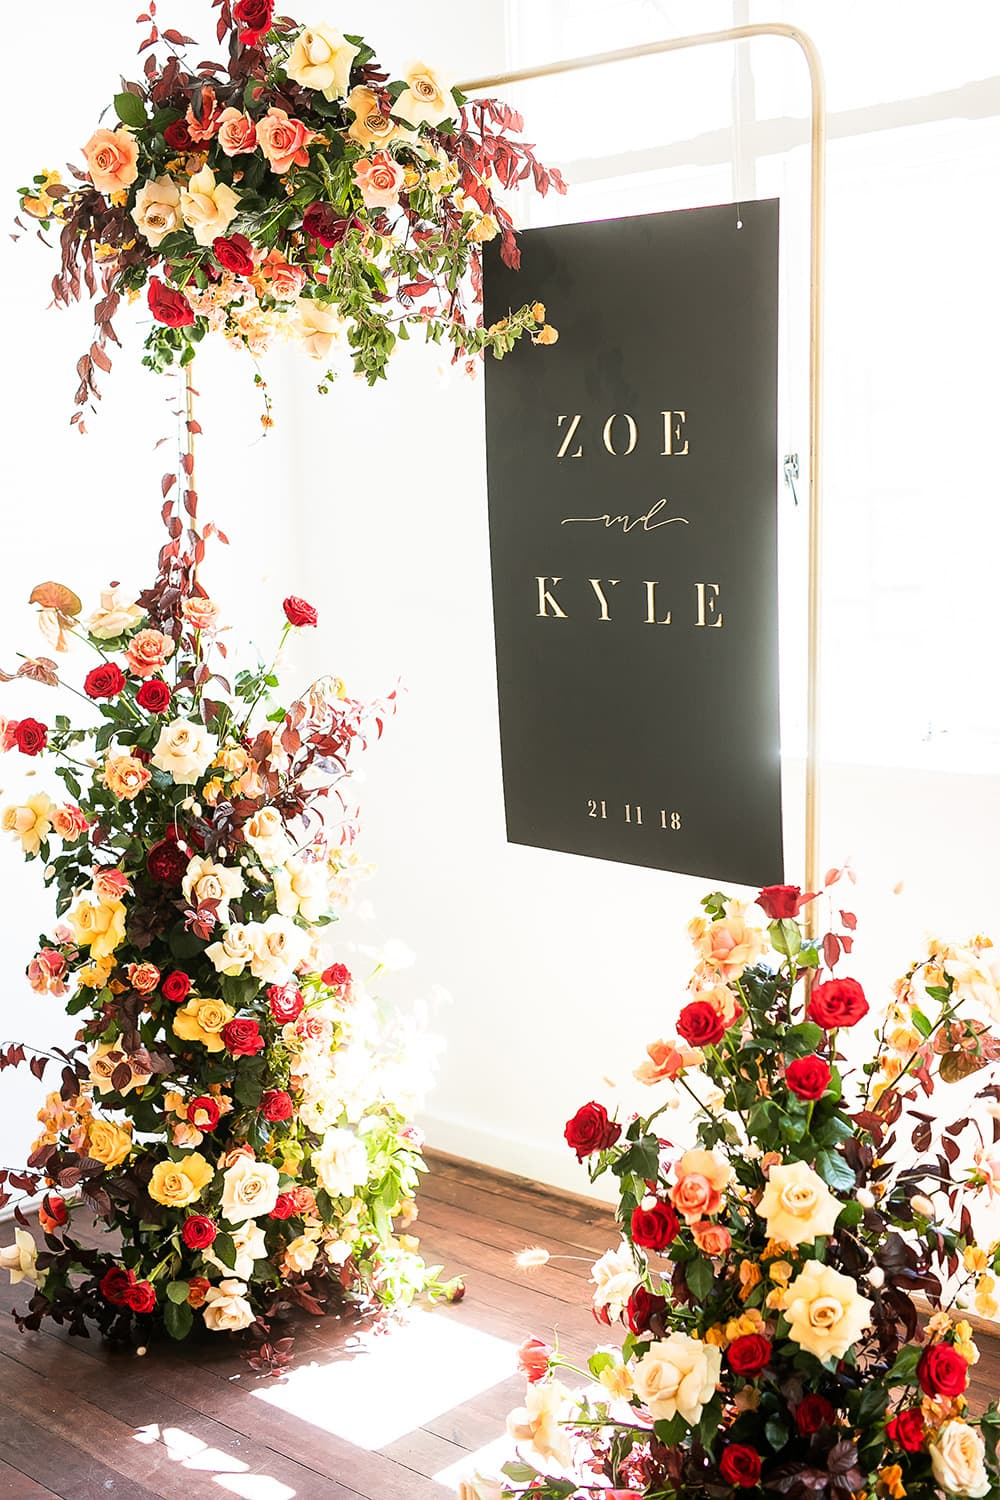 chic modern floral wedding arch ideas with black board acrylic sign